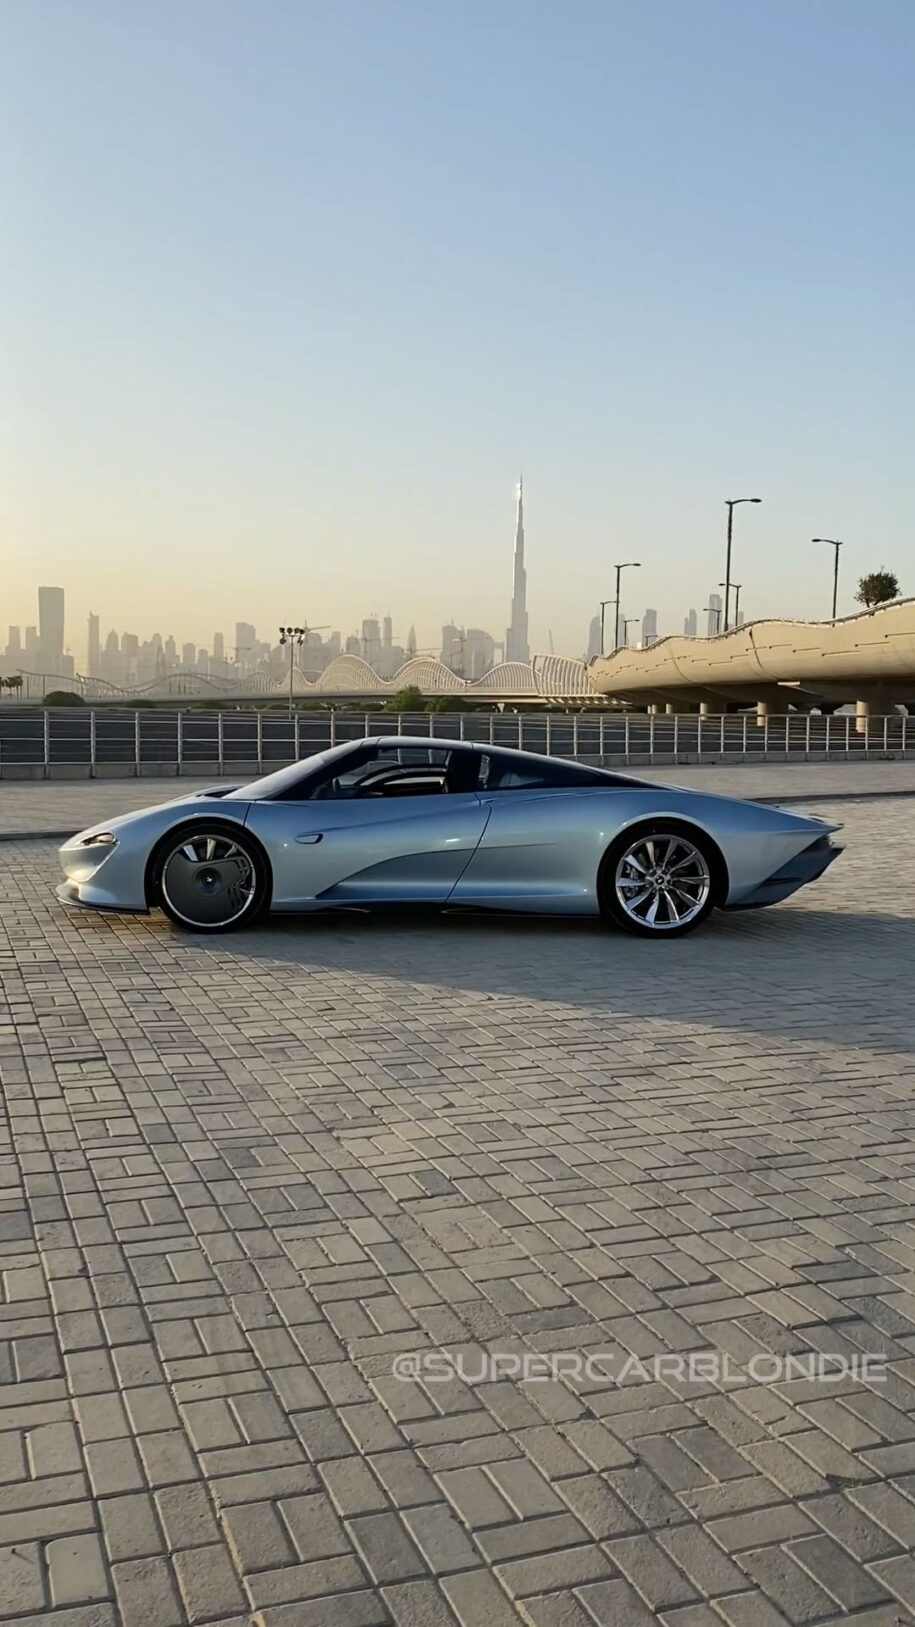 The paint has real diamonds  in it and the exhaust is surrounded by 24 – Alexandra Mary – supercar blondie 📰